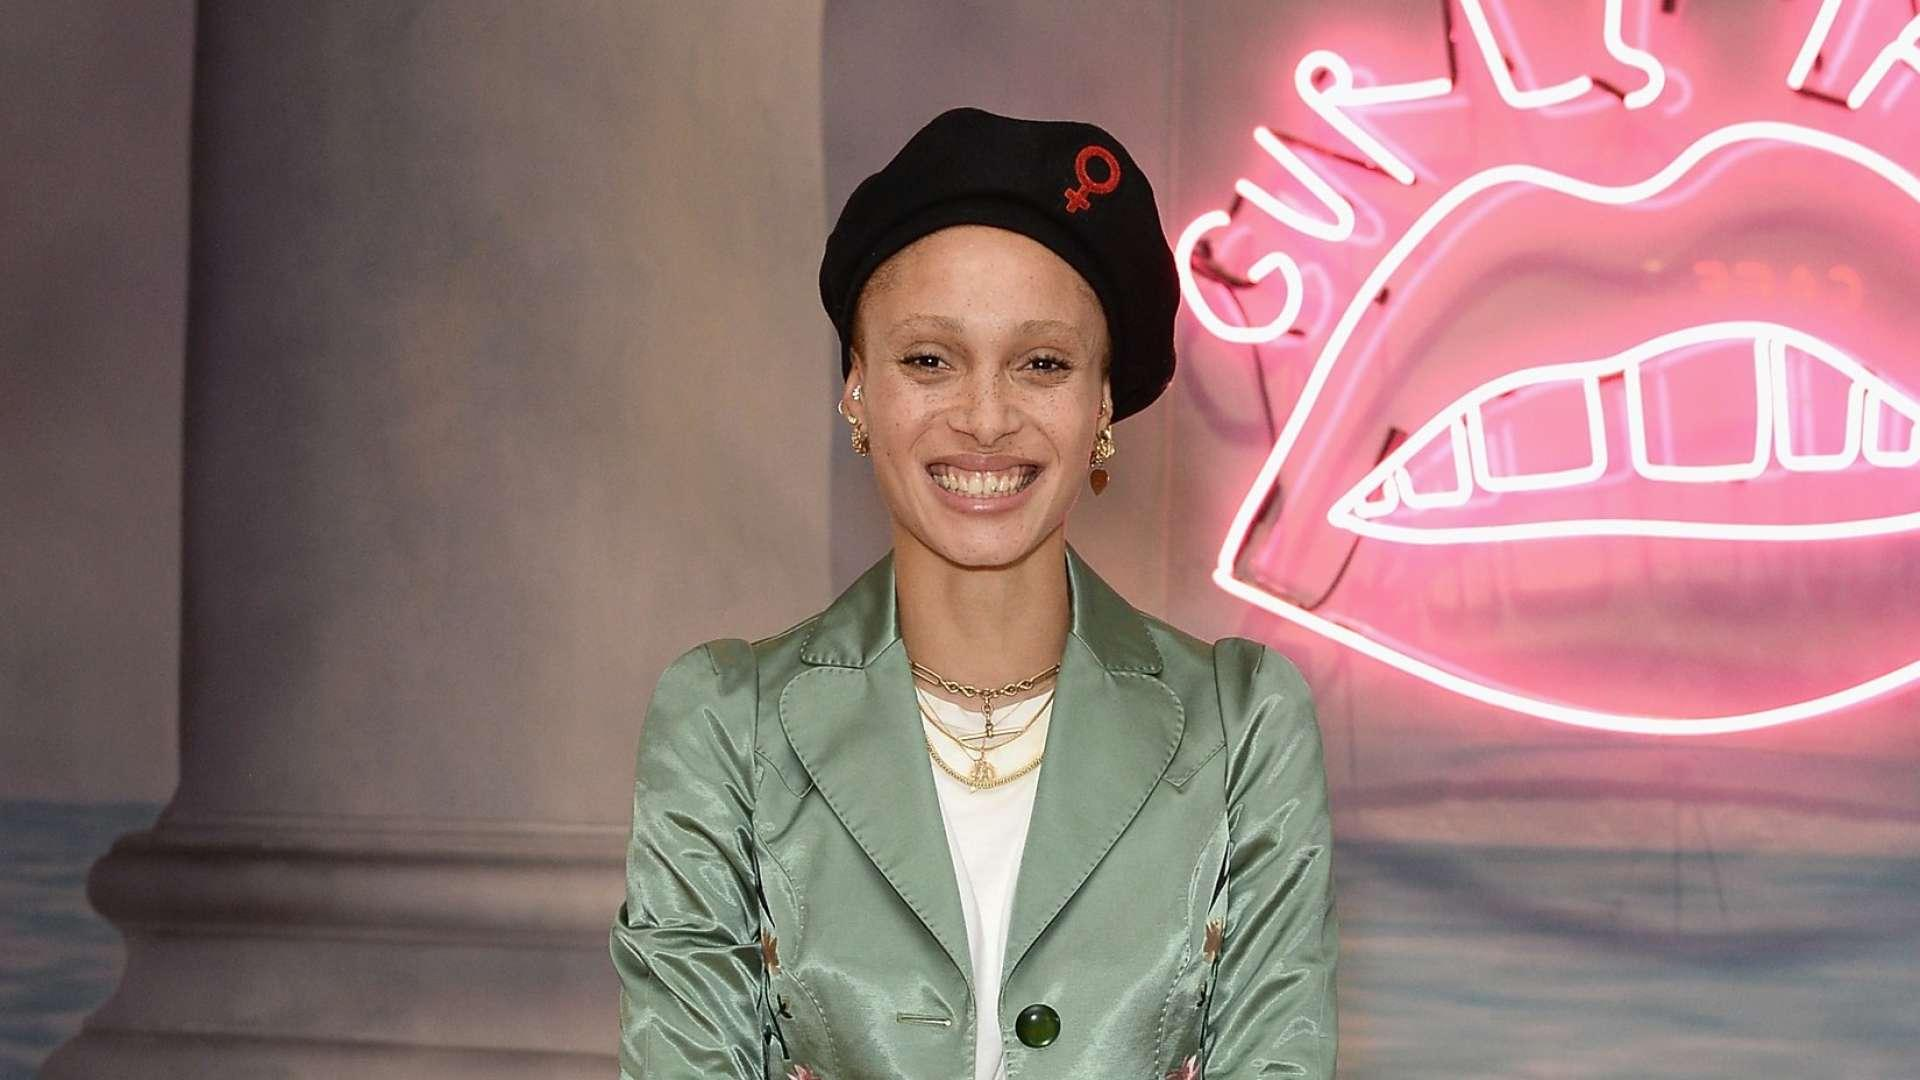 Adwoa Aboah goes to Ghana for new Burberry campaign